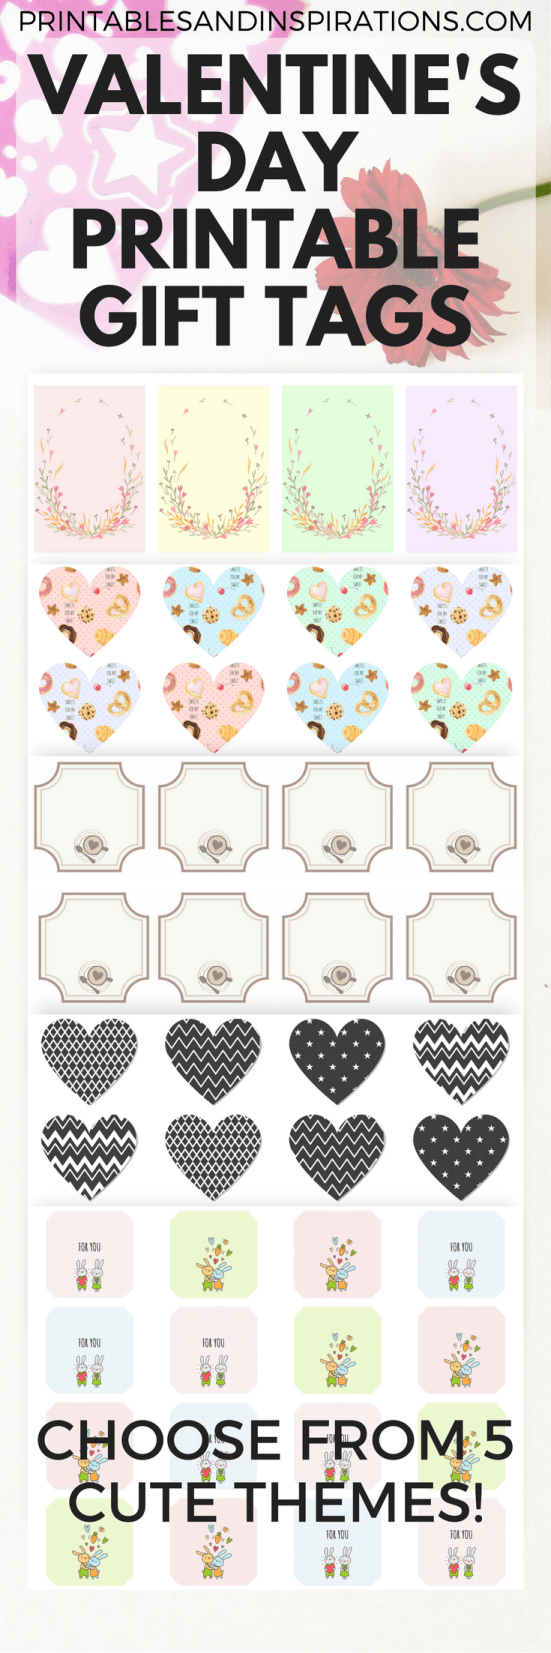 Free printable valentines day gift tags, valentines ideas, gift ideas for Valentines Day, cupcakes decorations, gift tags printable, gift tags for valentines